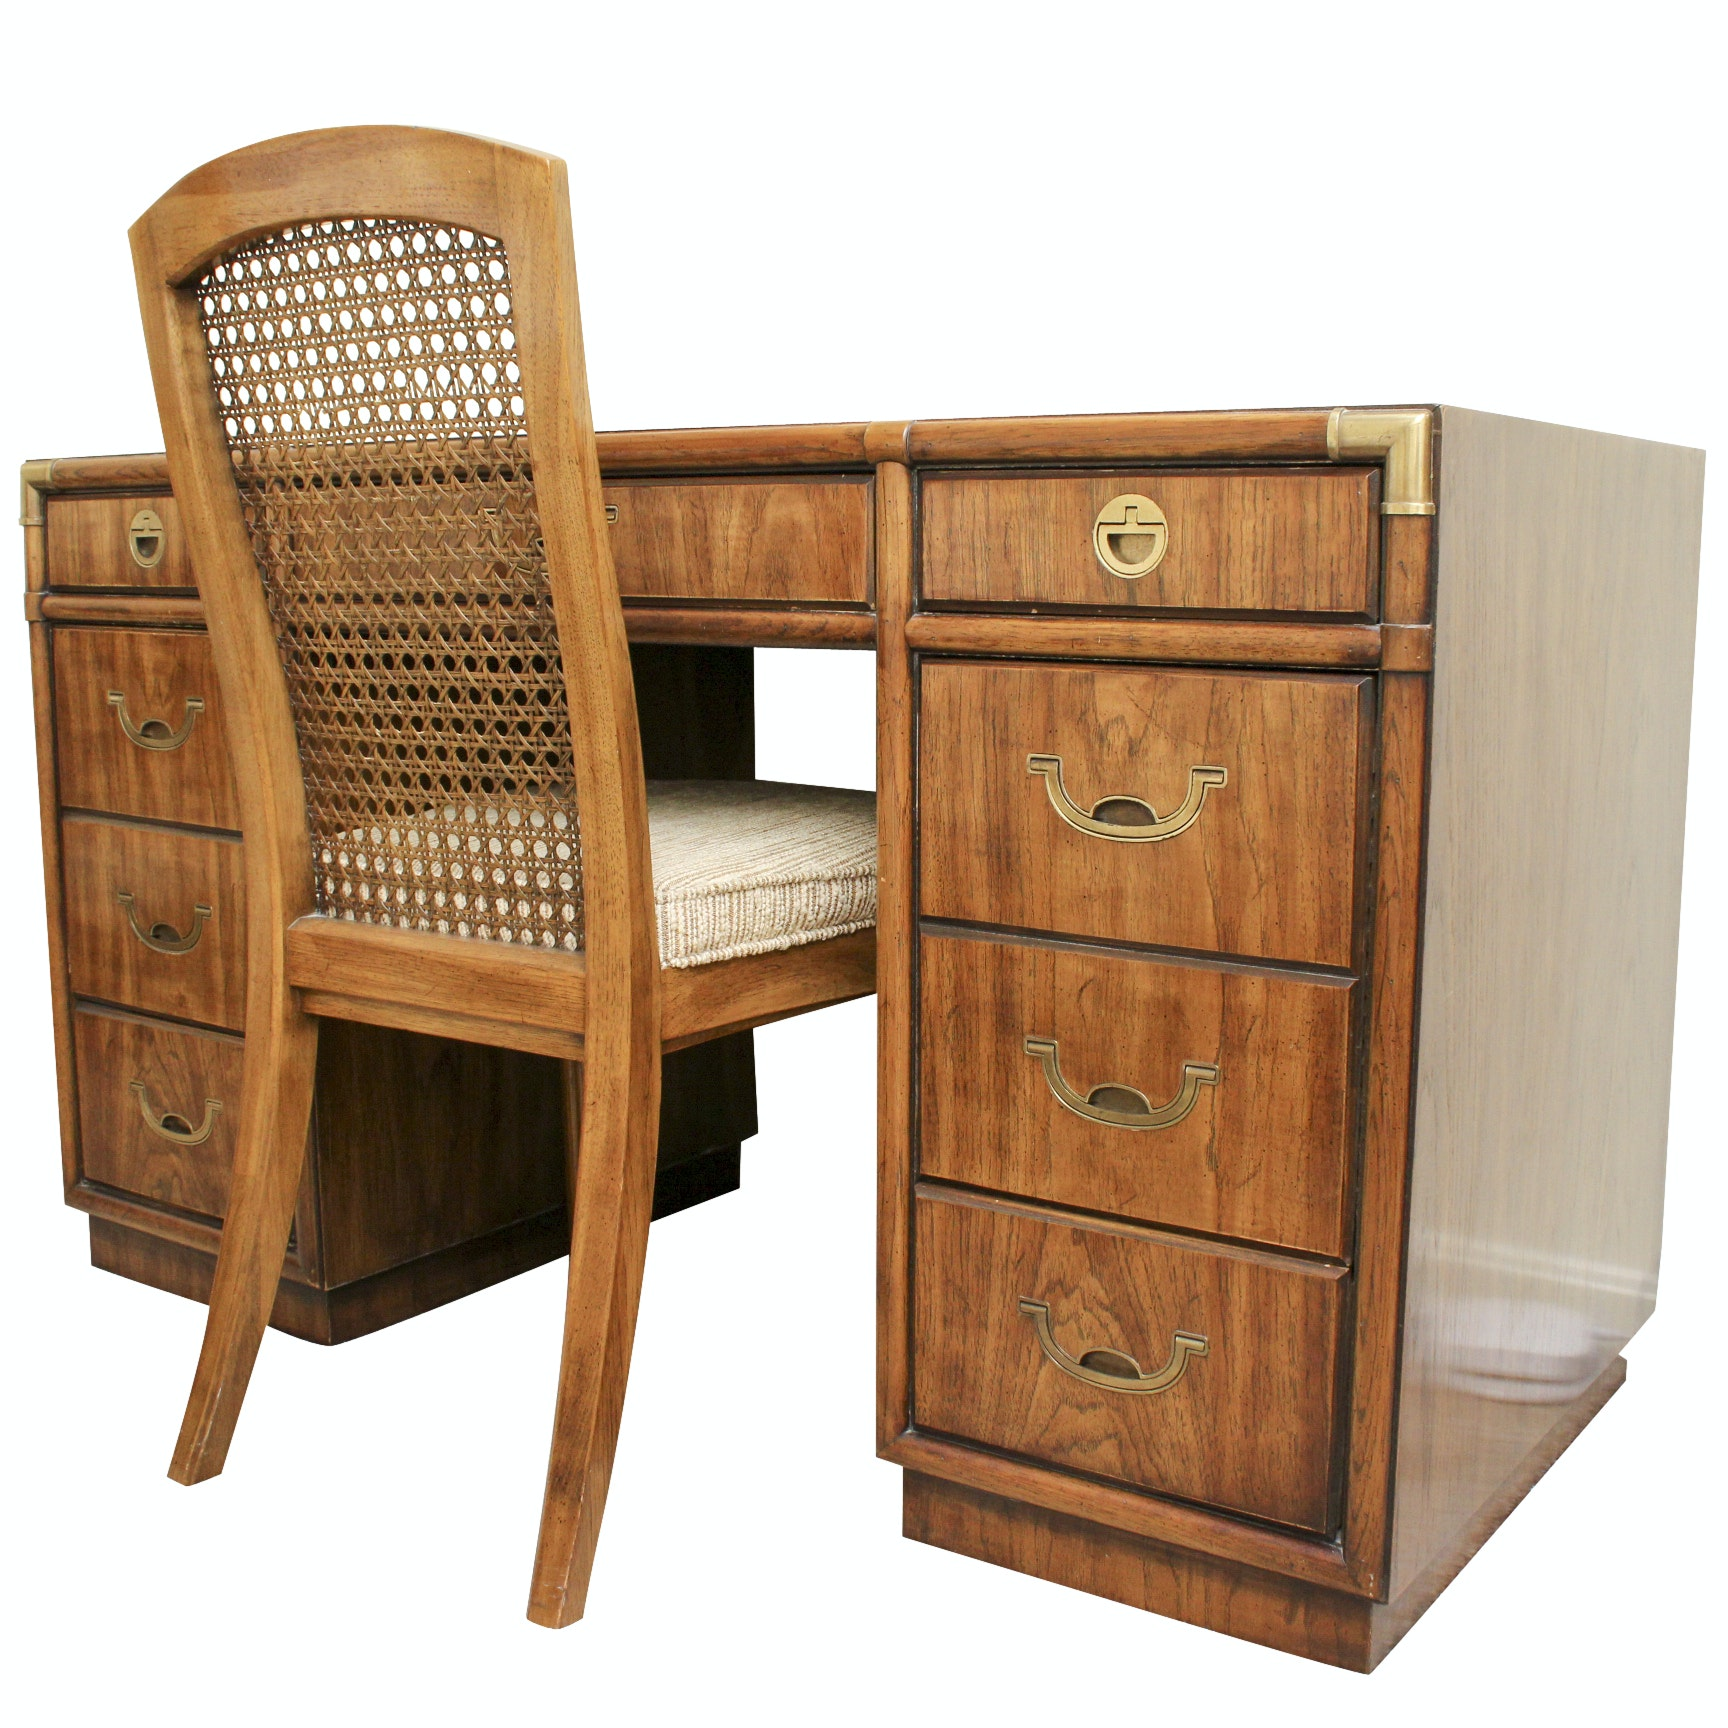 Drexel-Heritage Kneehole Desk and Cane Chair